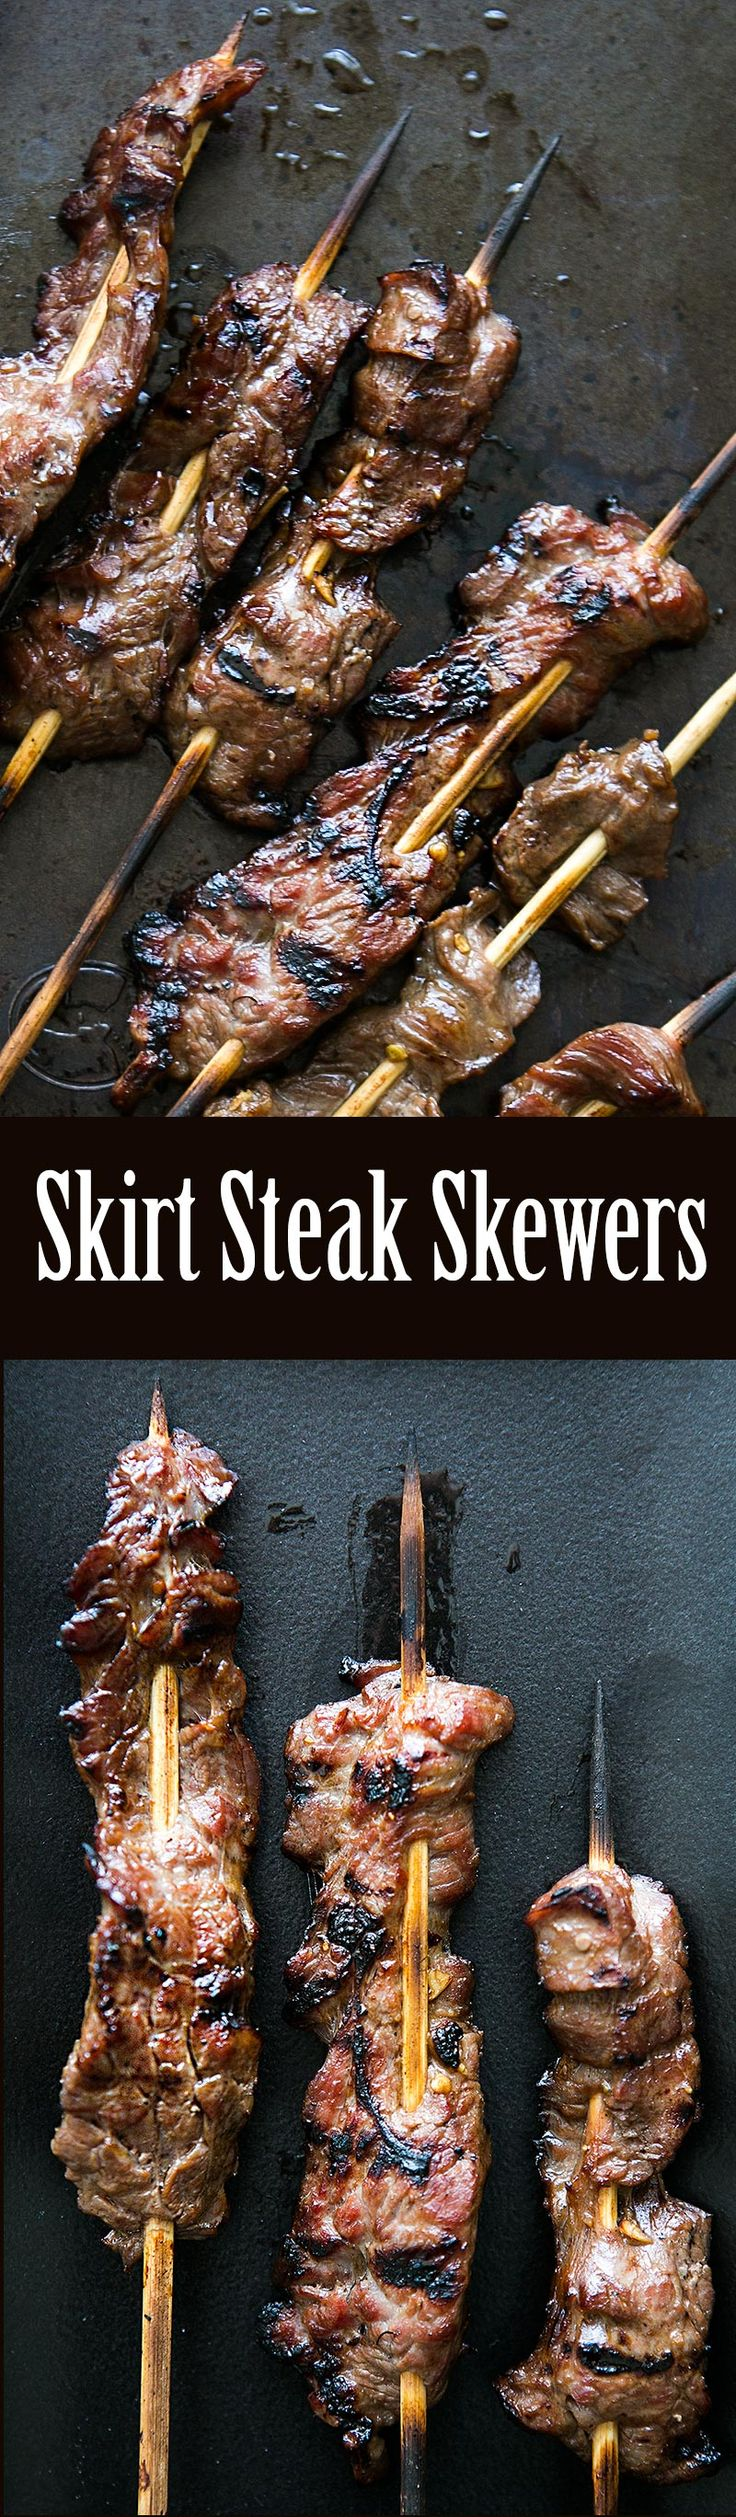 Grilled Skirt Steak Skewers ~ Marinated skirt steak, threaded onto skewers and grilled. ~ SimplyRecipes.com